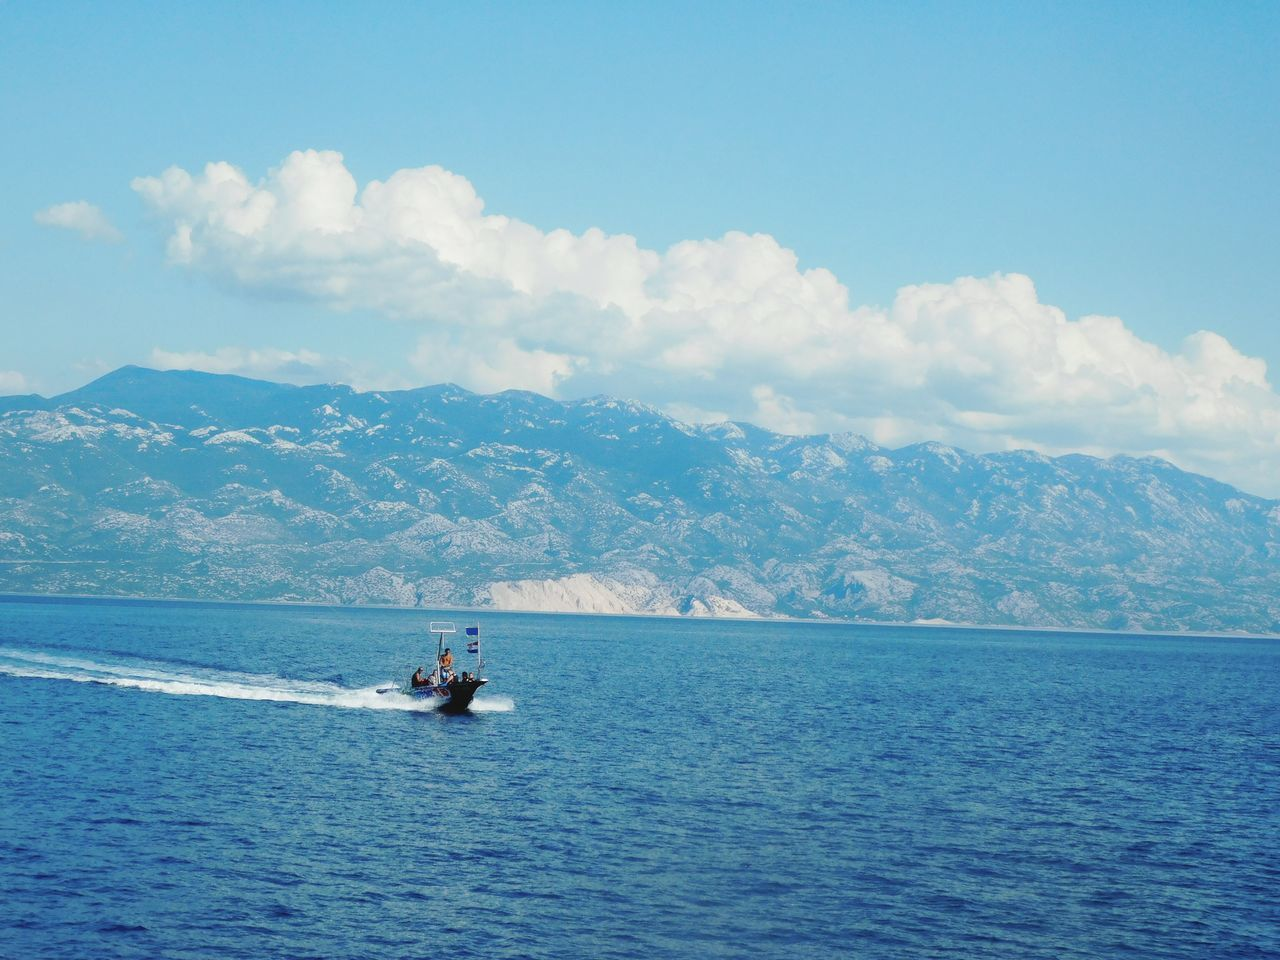 Sea And Sky Sea Seaside Boat Croatia Krk Island Crikvenica Freedom Freelance Life Adriatic Sea